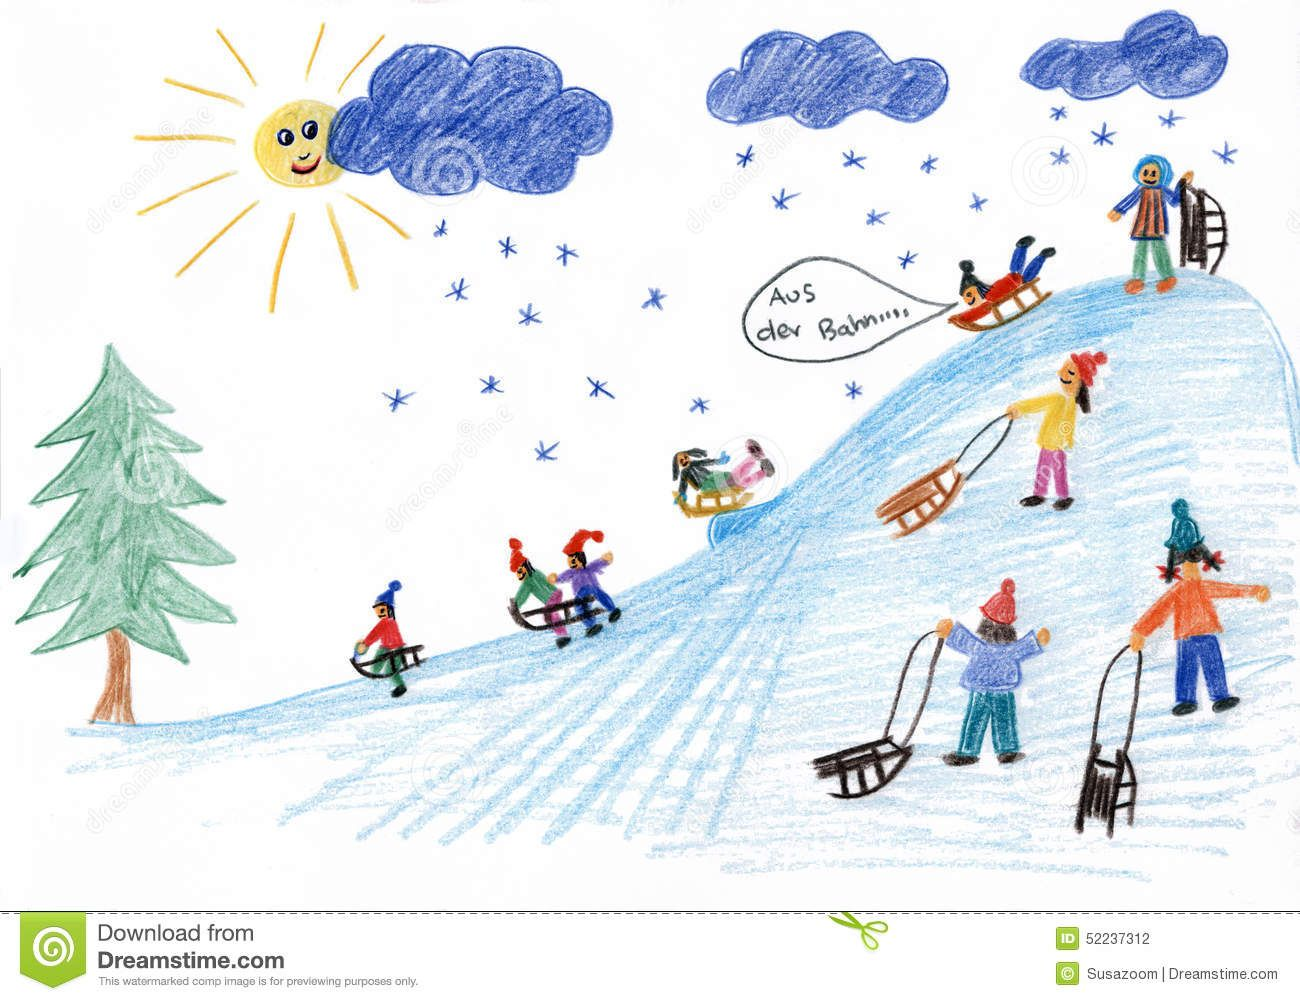 Clipart cute animals sledding down snowy hill jpg black and white library Sledding Kids On The Hill - Children Painting - Download From Over ... jpg black and white library